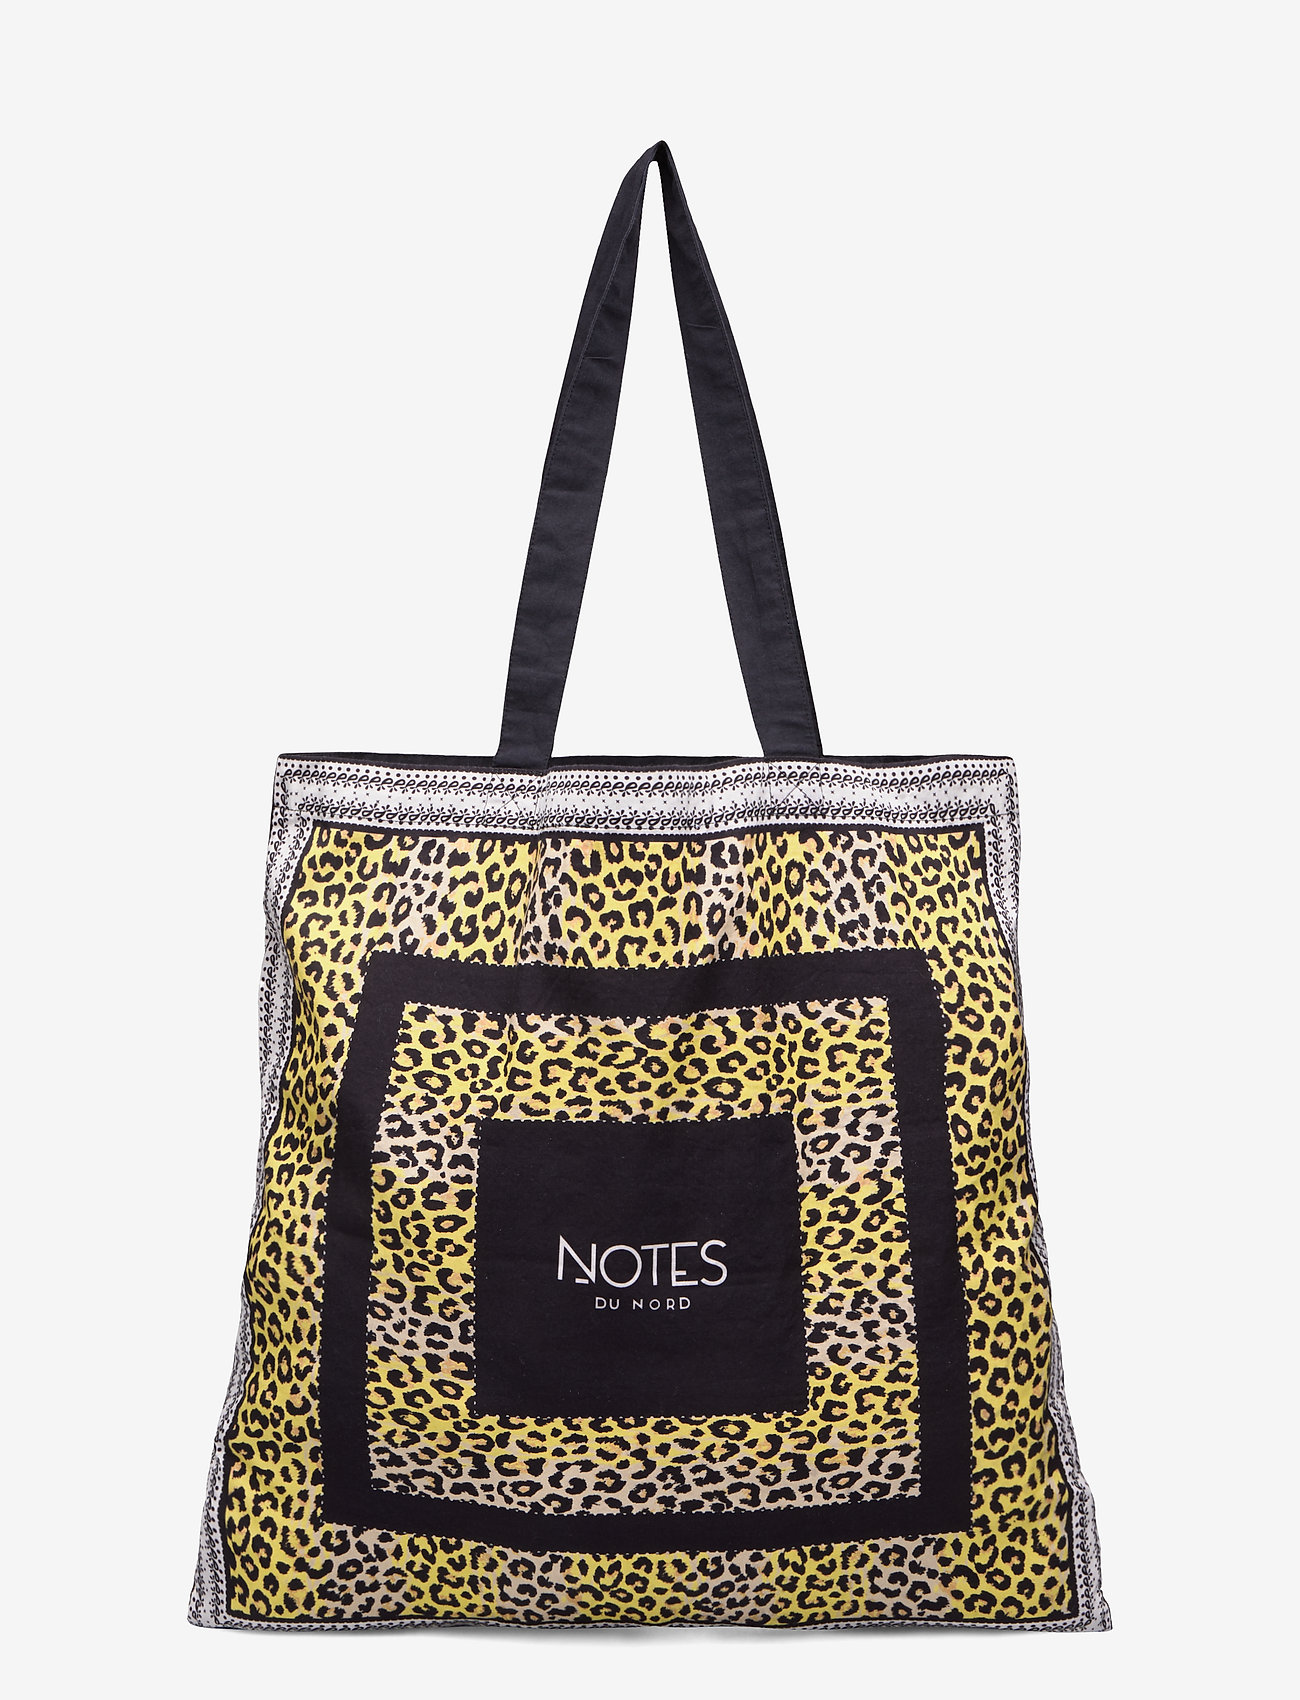 Notes Du Nord Olizzy Bag - Shopping Lemon Leopard